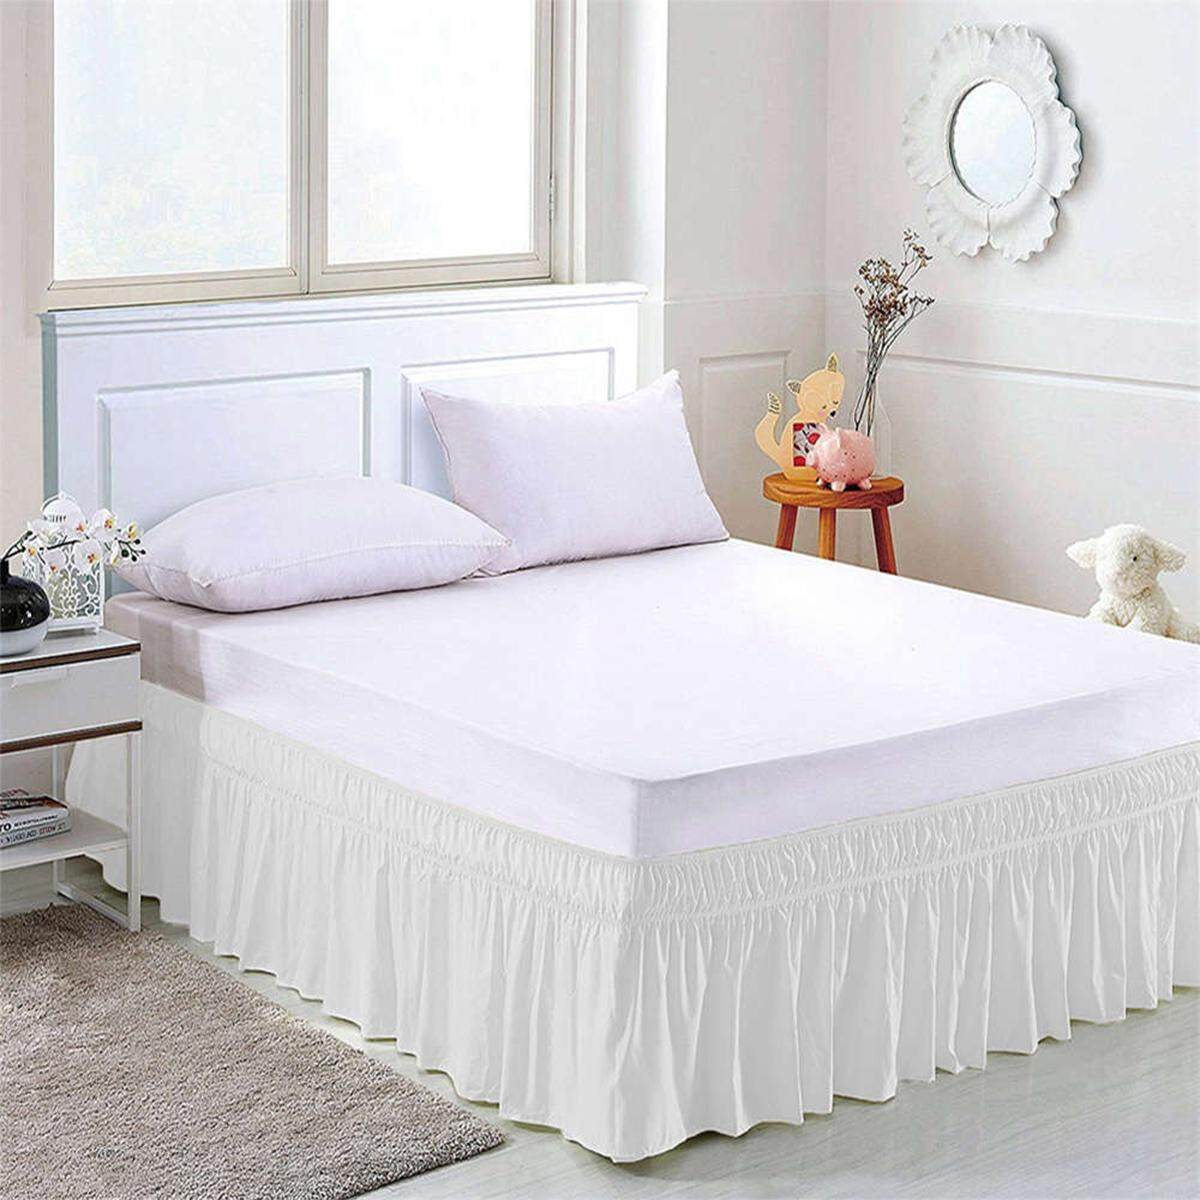 the sand products line sheets linen on skirt in single skirts beige valance bedskirtinsand bed